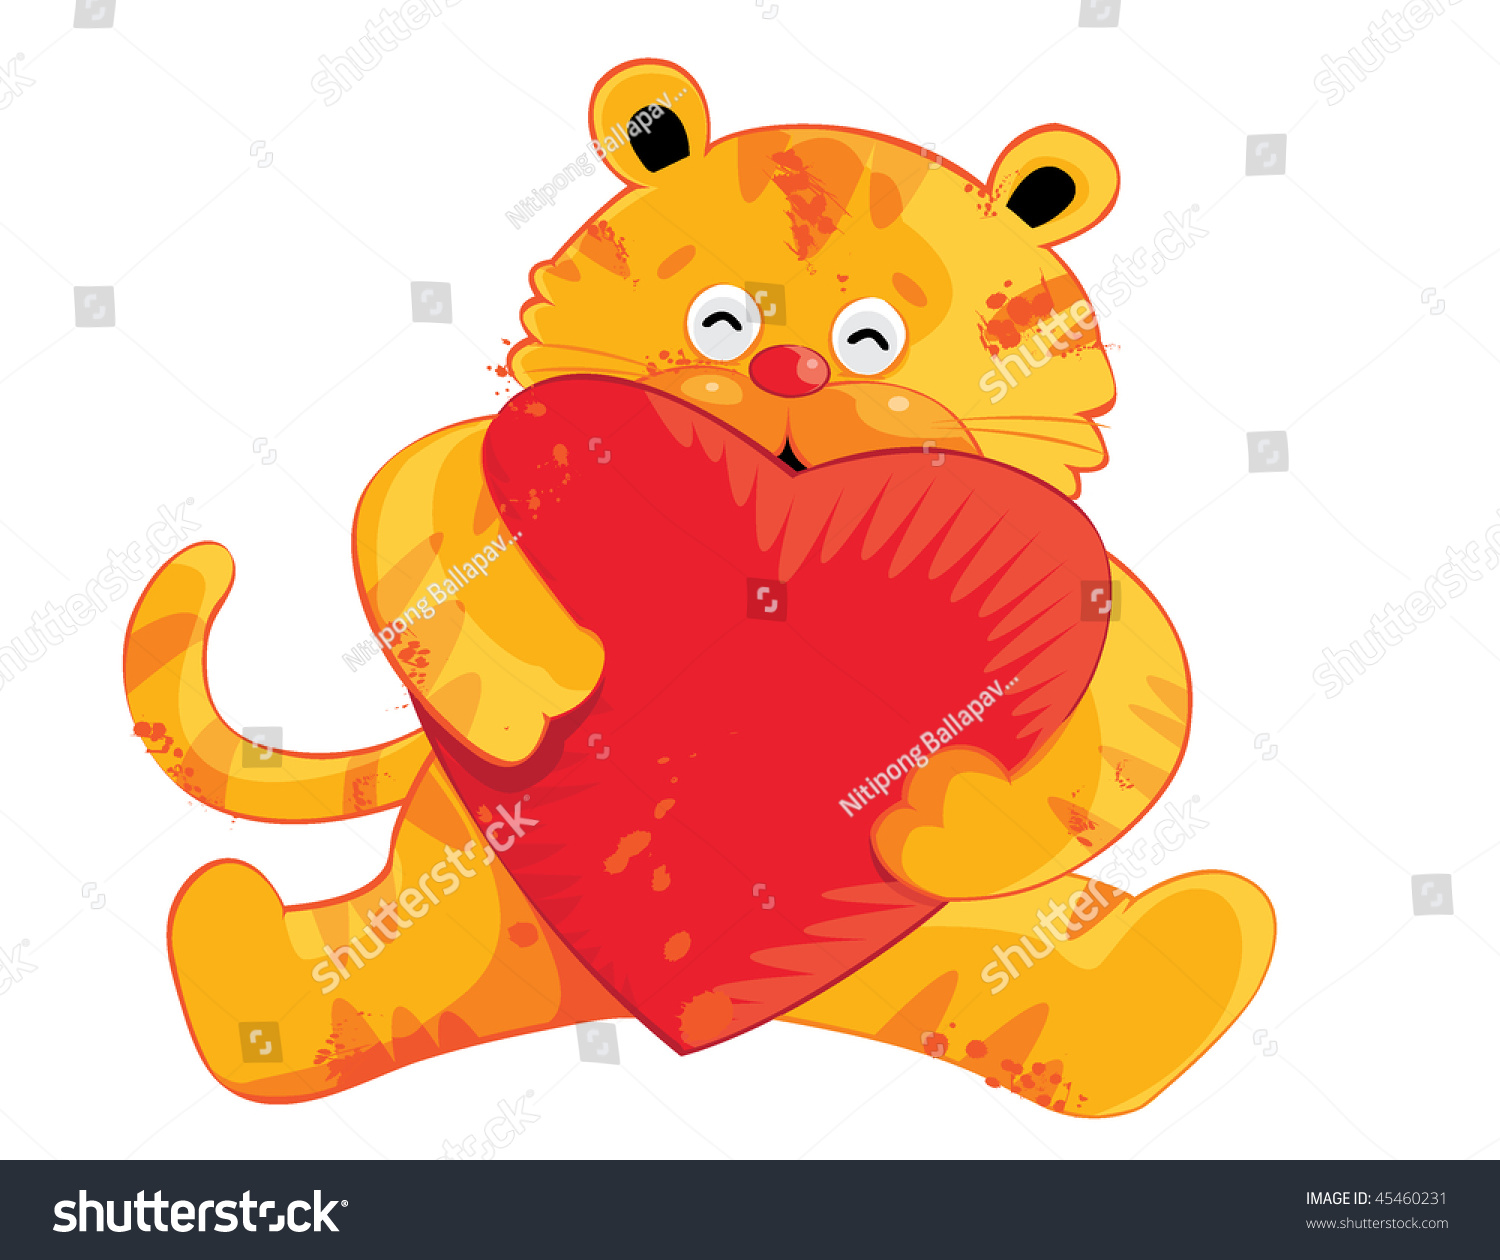 Cartoon Characters Valentines Day : Cute tiger cartoon characters for valentine day stock